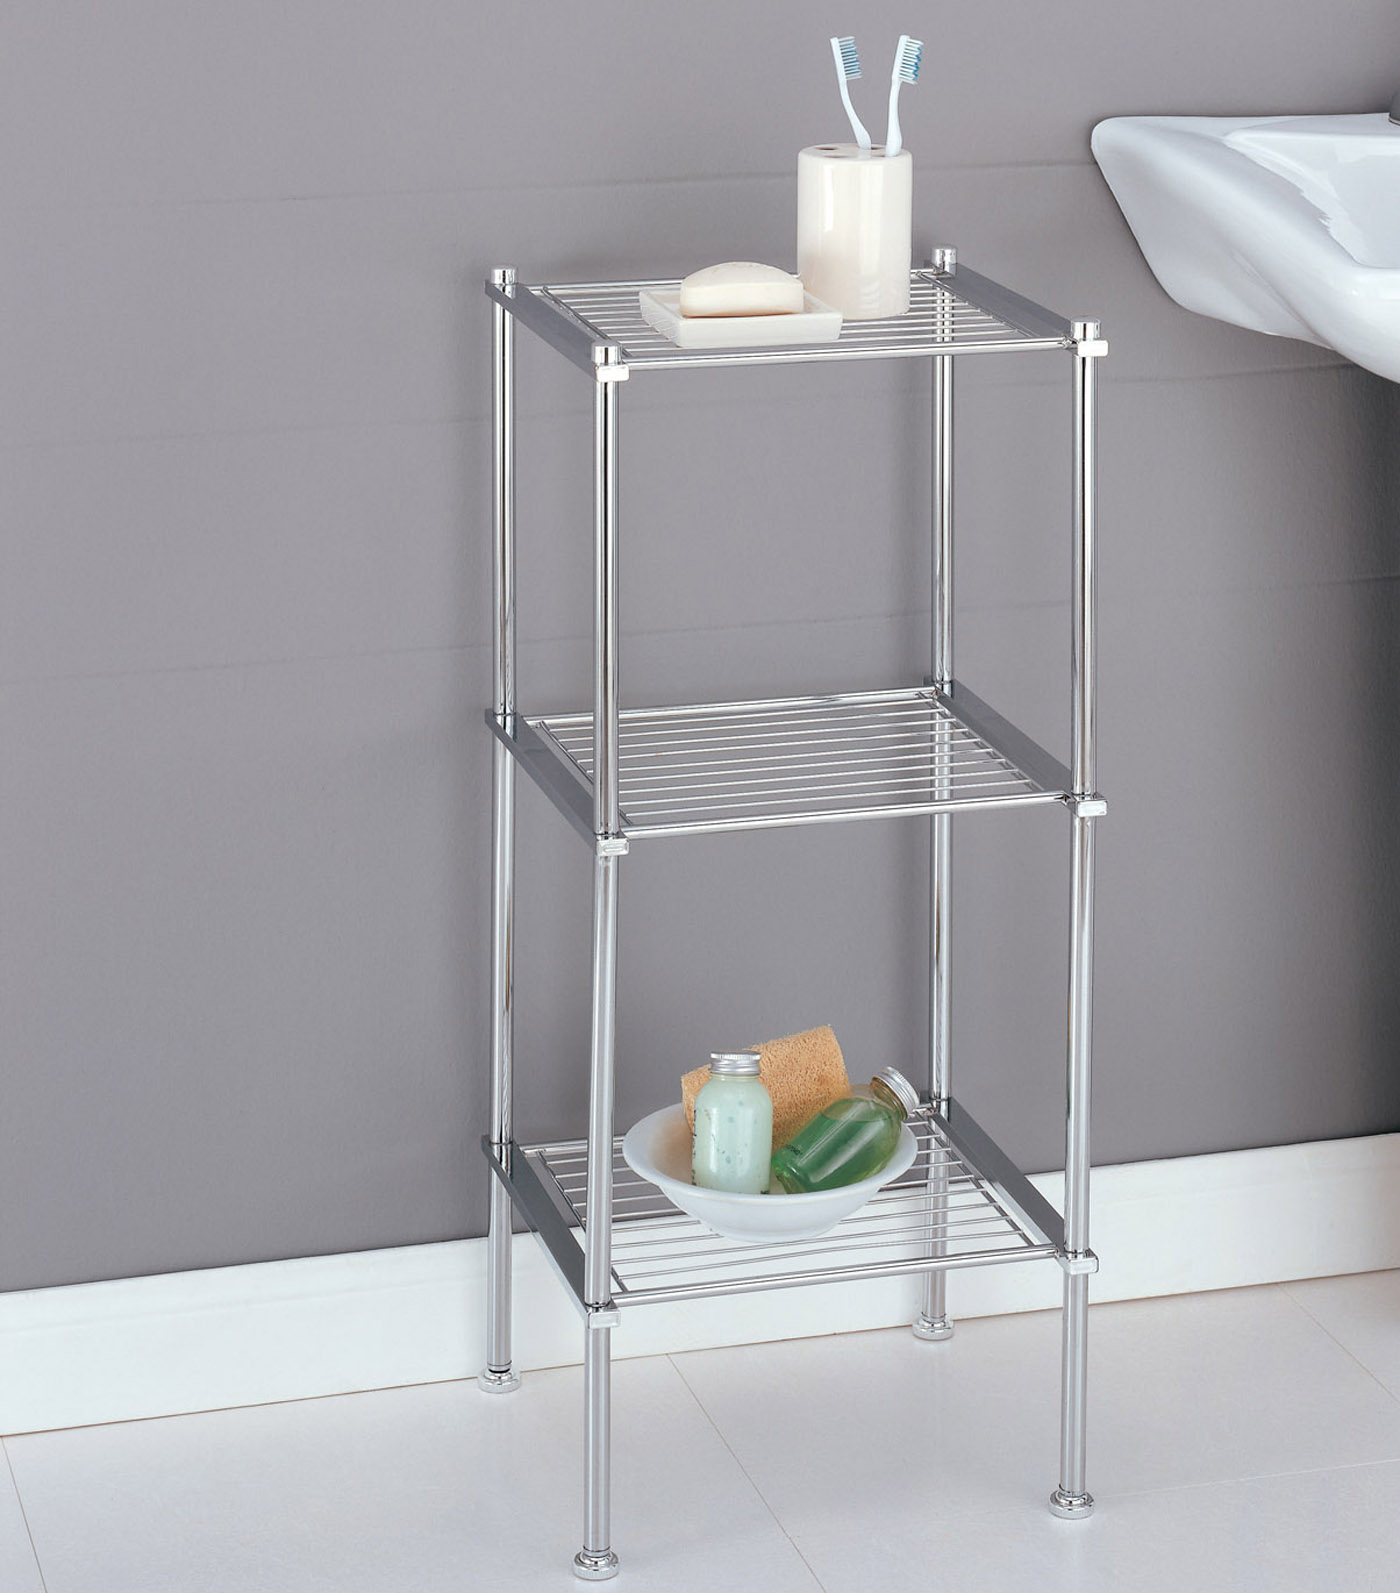 Three Tier Bathroom Stand: Three Tier Storage Shelf In Bathroom Shelves